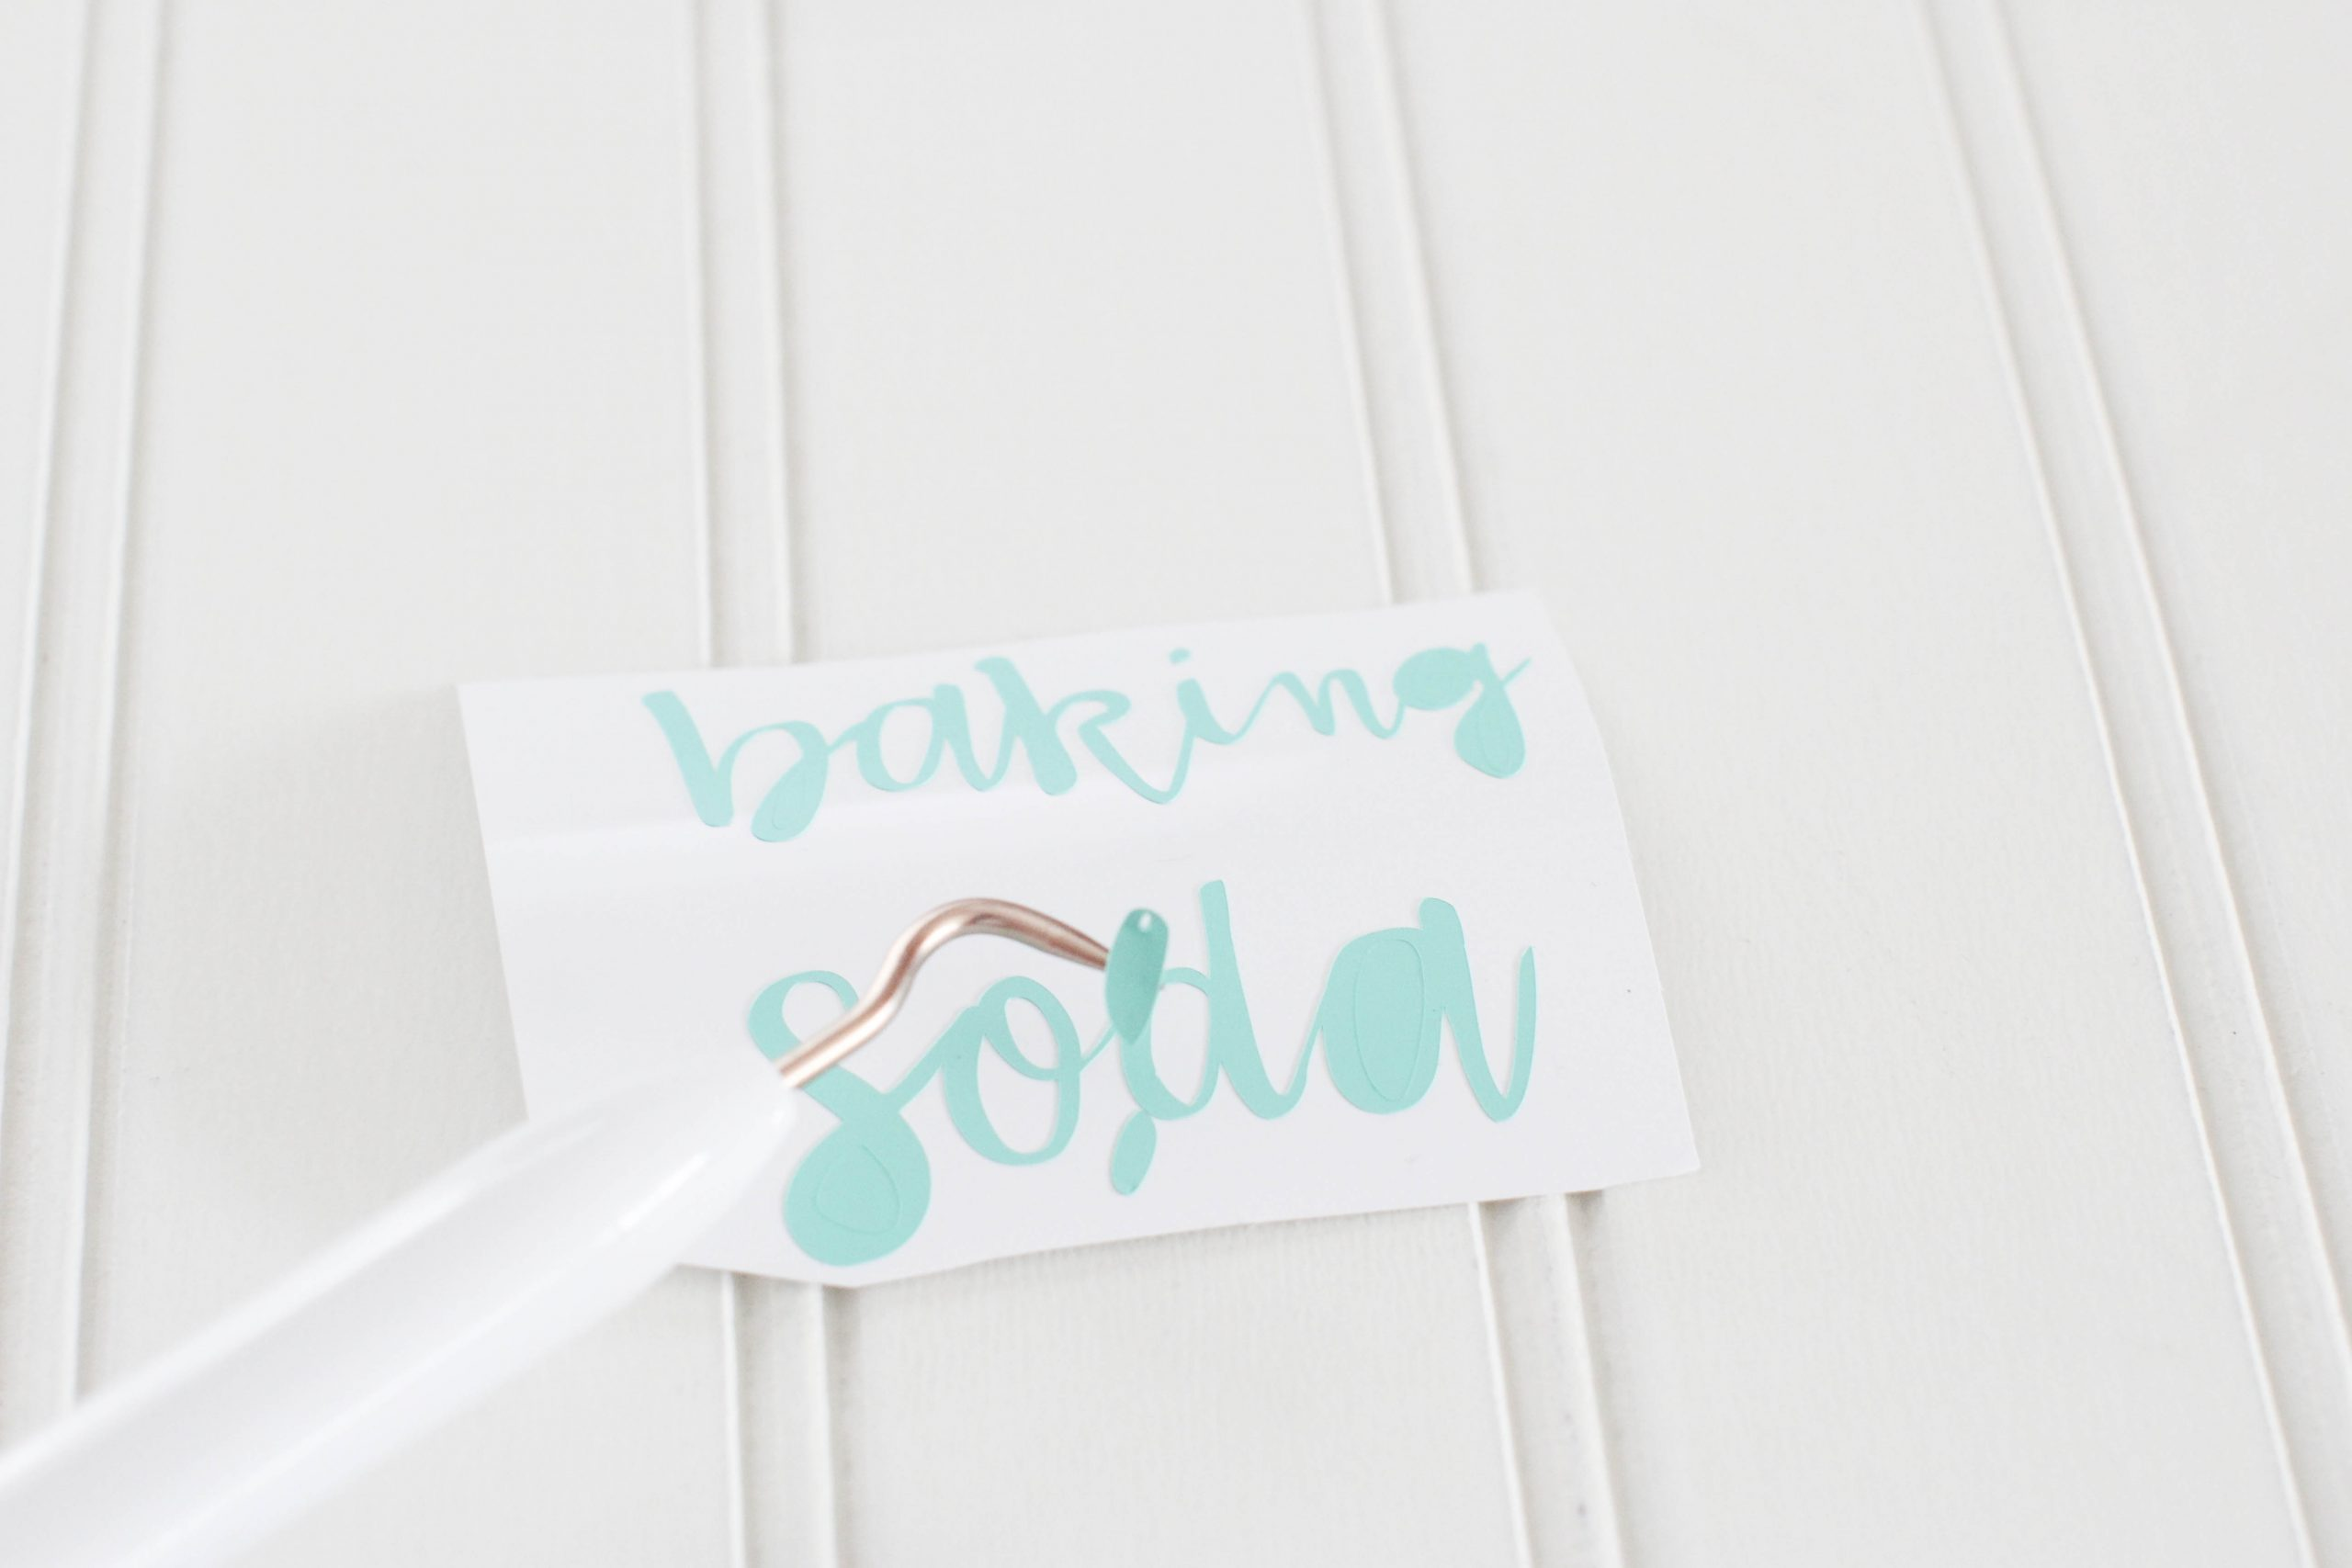 cricut joy machine and cricut joy materials printed pantry label ready to be weeded© DearCreatives.com